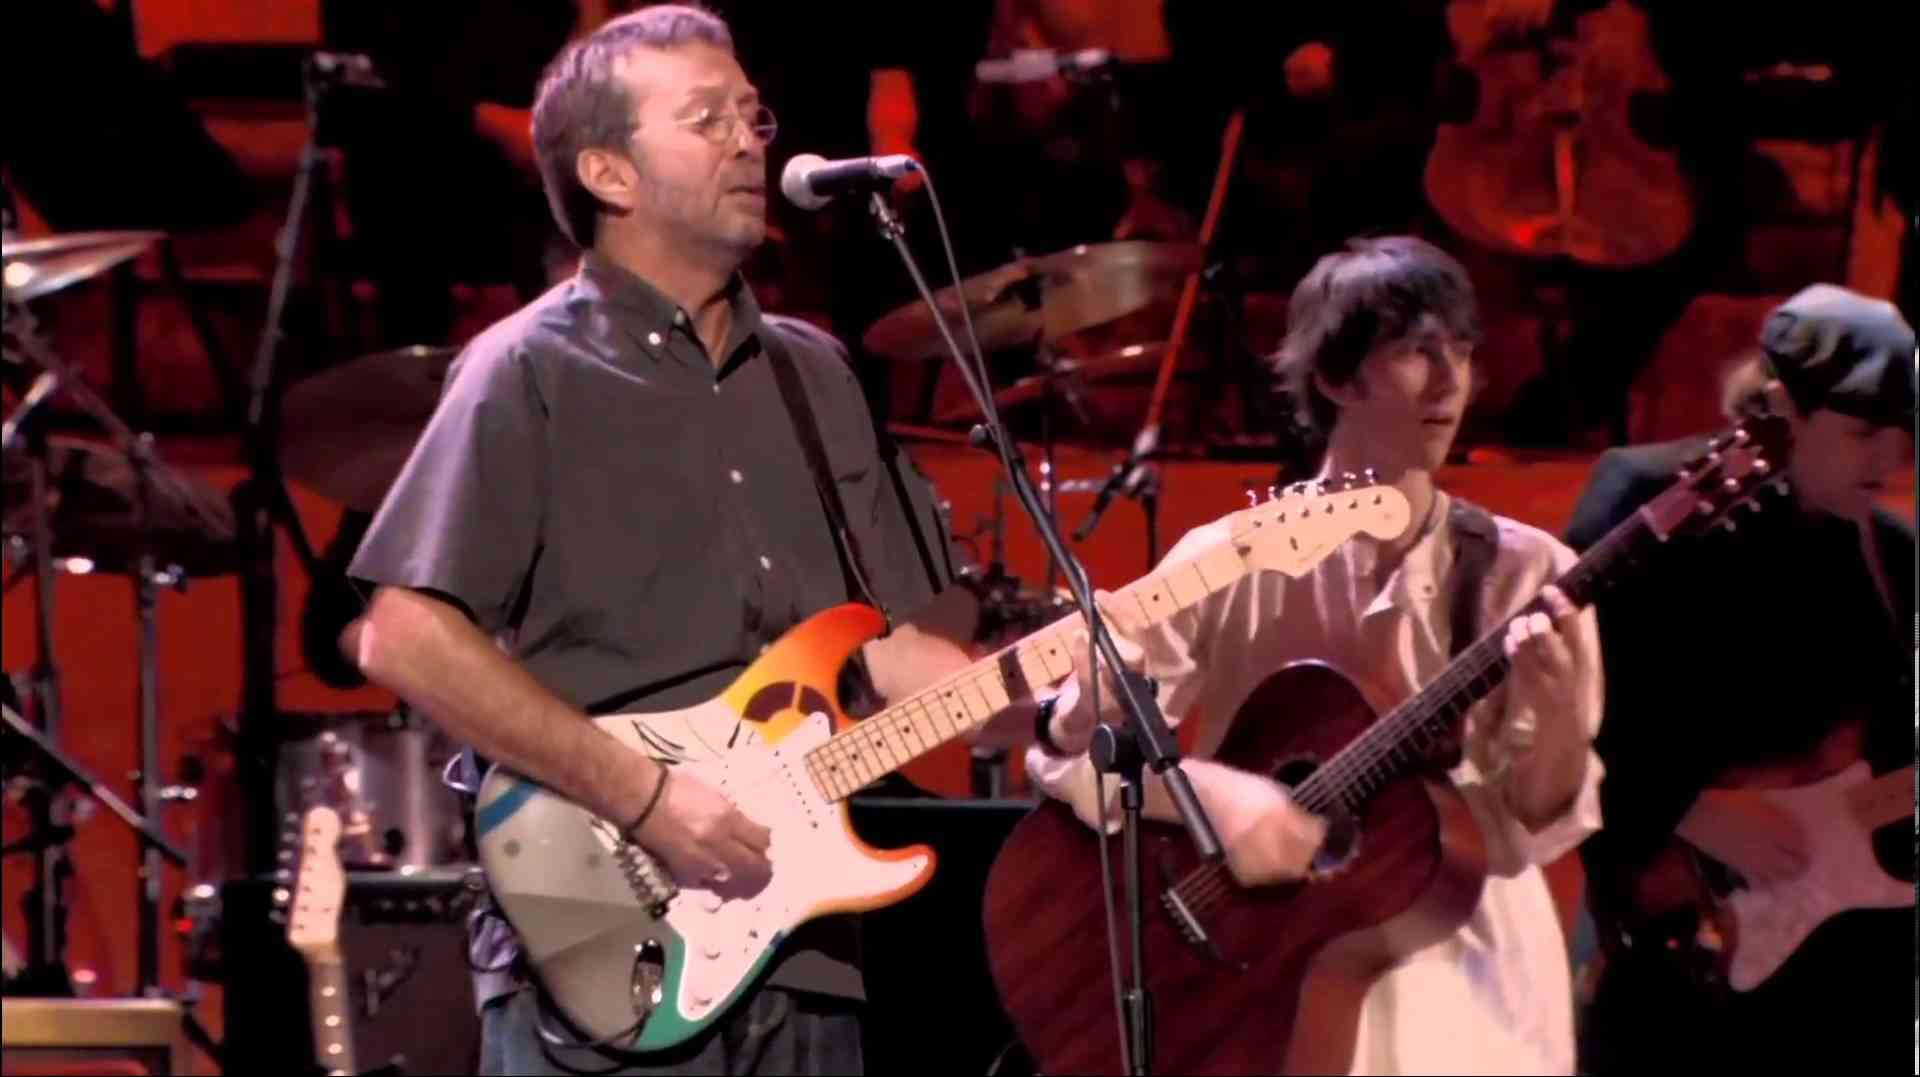 Eric Clapton & Paul McCartney - While My Guitar Gently Weeps [HD] - YouTube